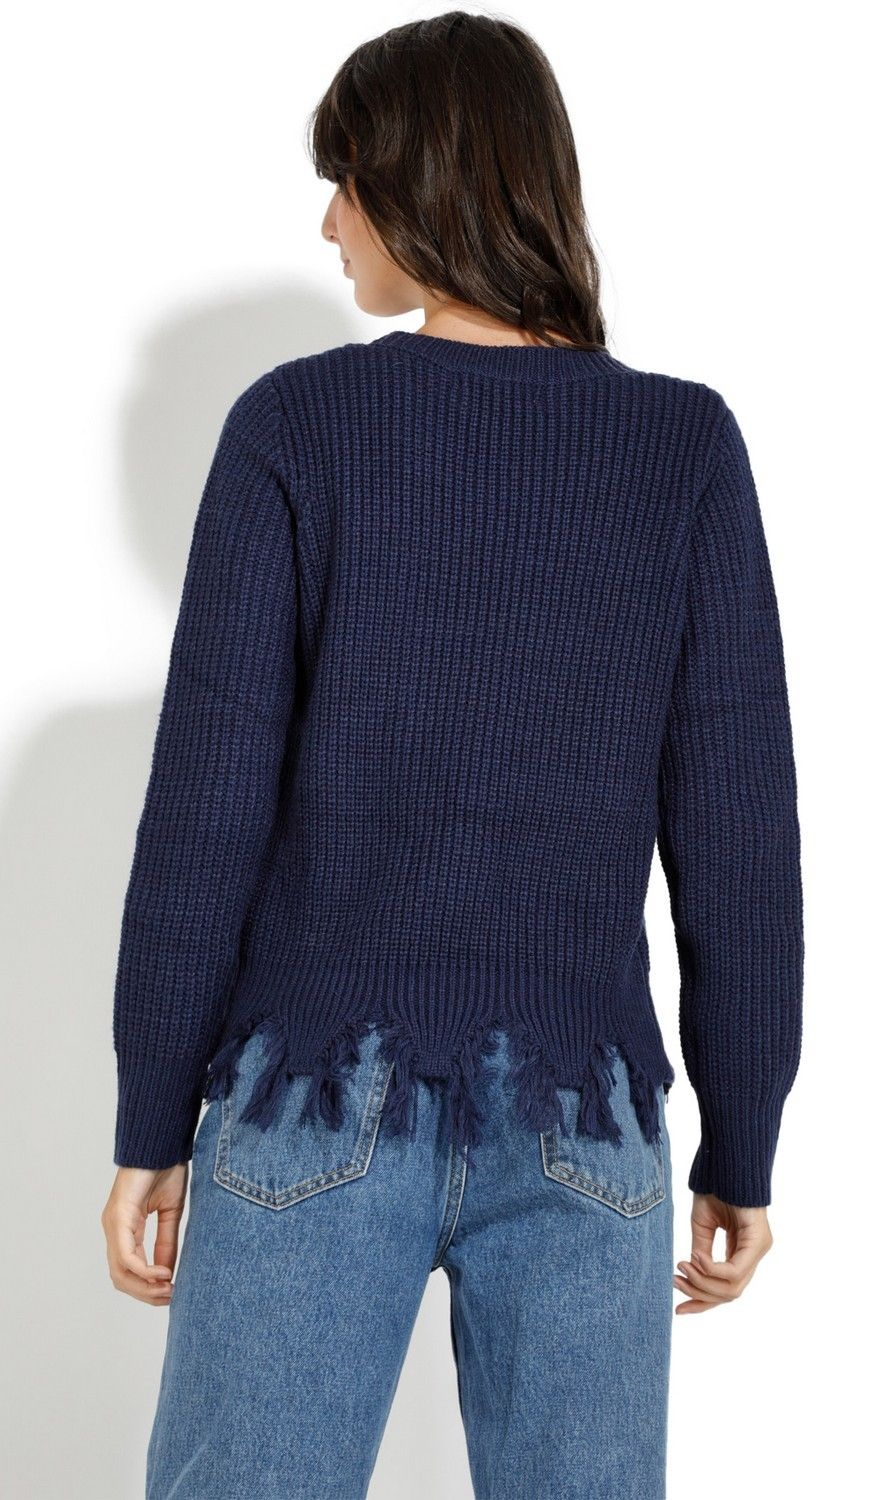 Assuili Crew Neck Ribbed Sweater with Distressed Hem in Navy